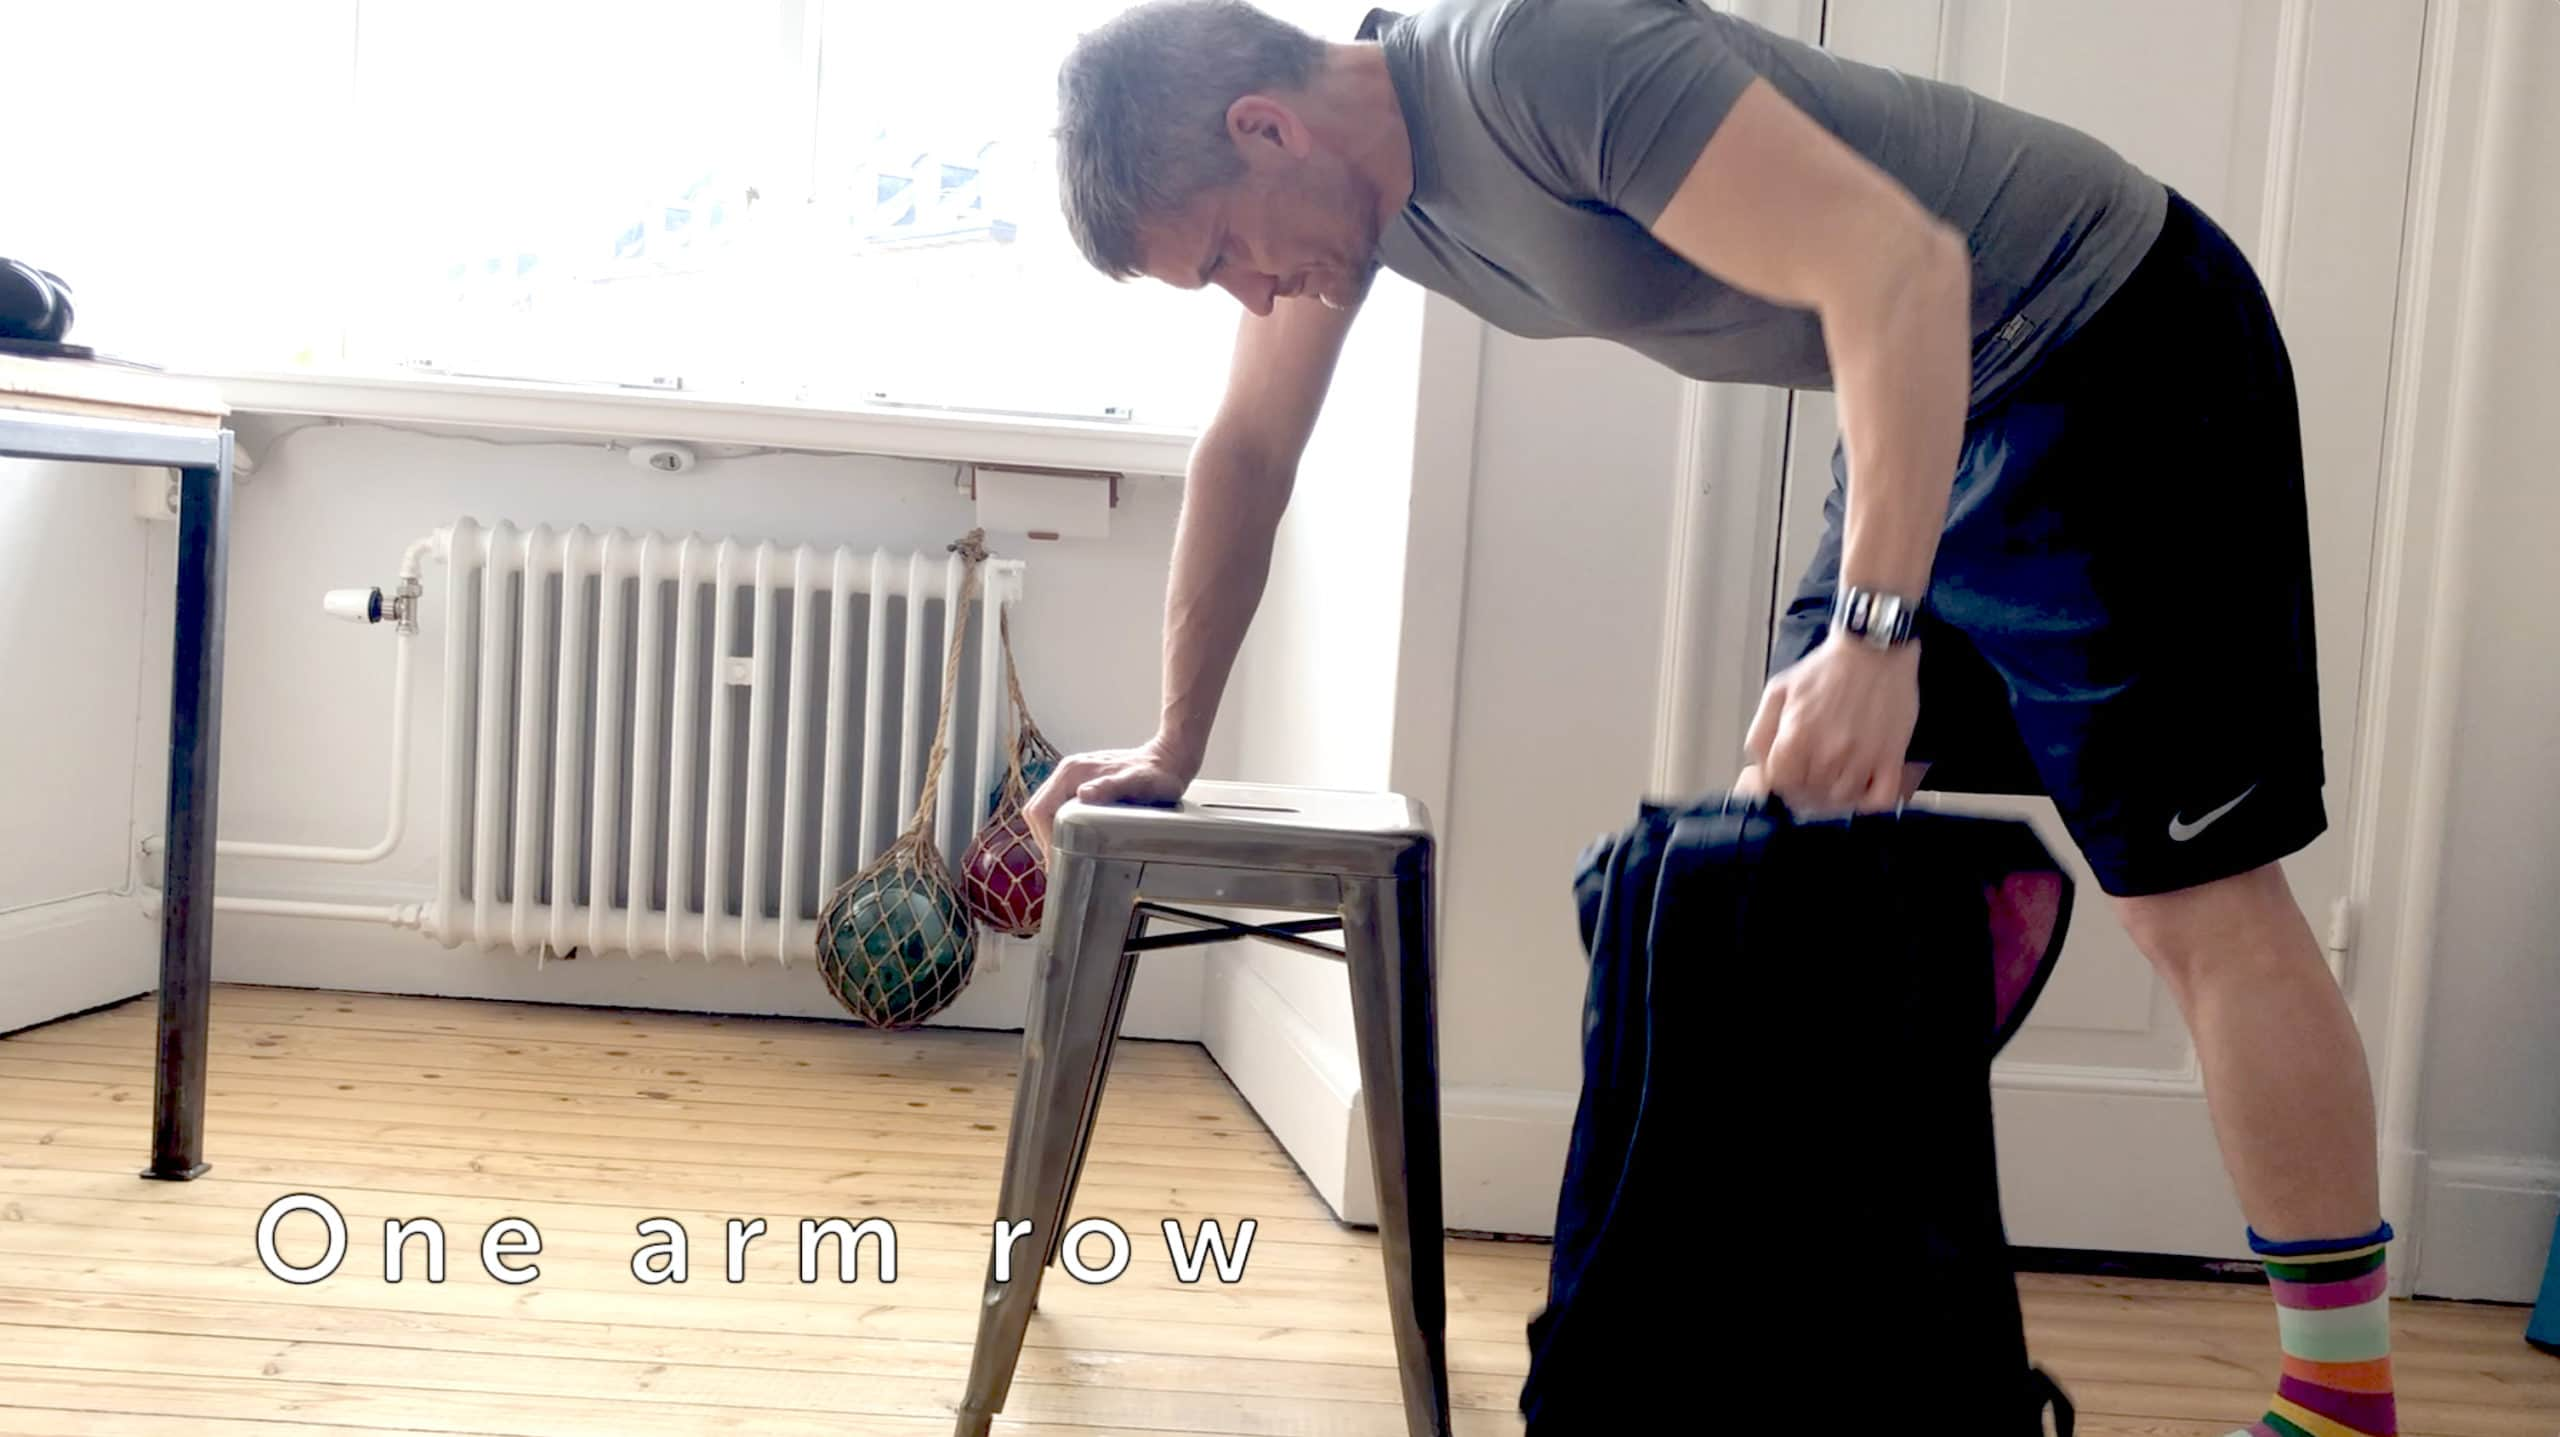 Fill a rucksack with heavy objects for an effective one-arm row.